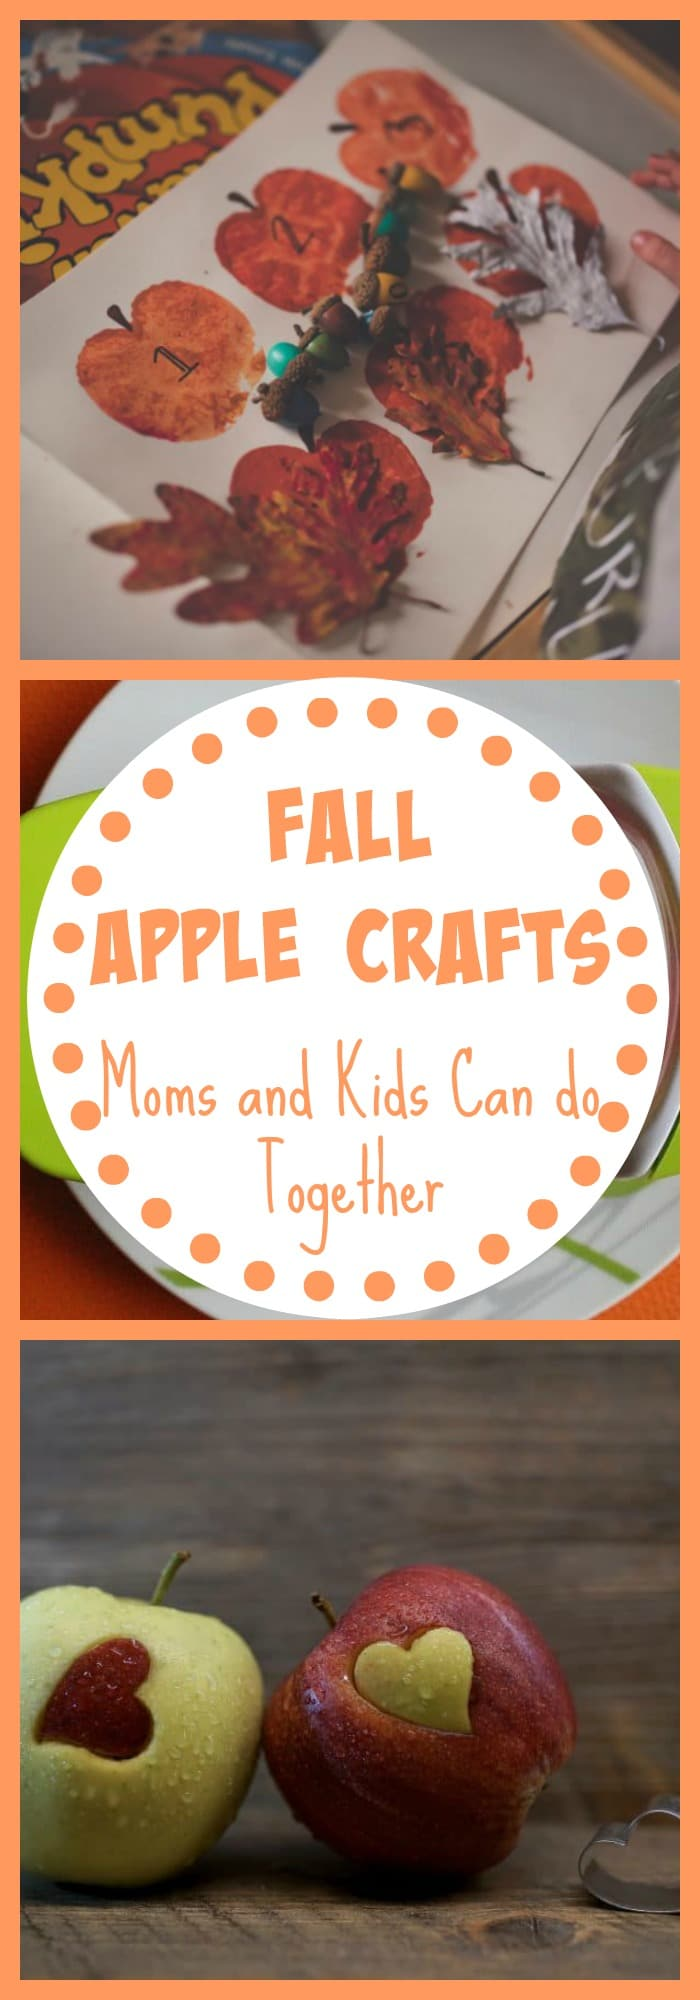 Fall Apple Crafts Moms and Kids Can Do Together